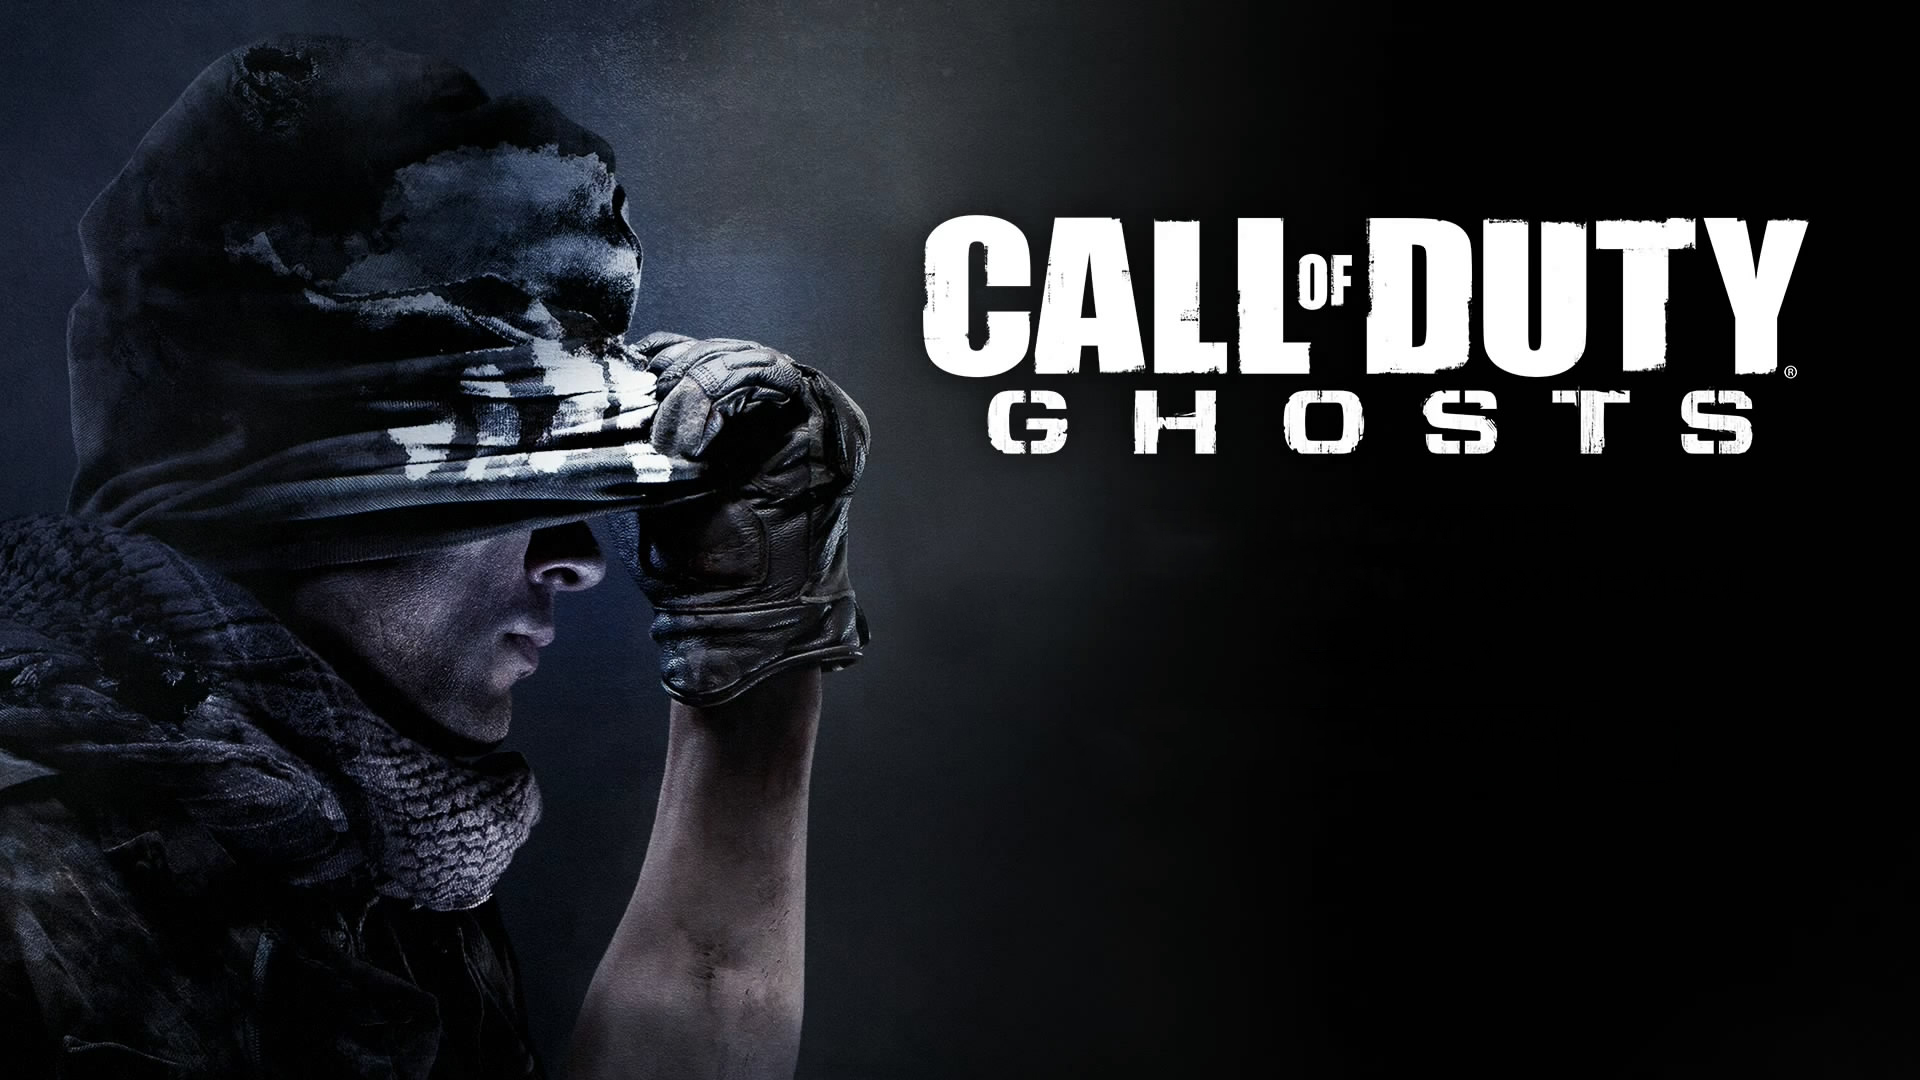 call of duty ghosts hd - Call of Duty Ghosts: What to Expect